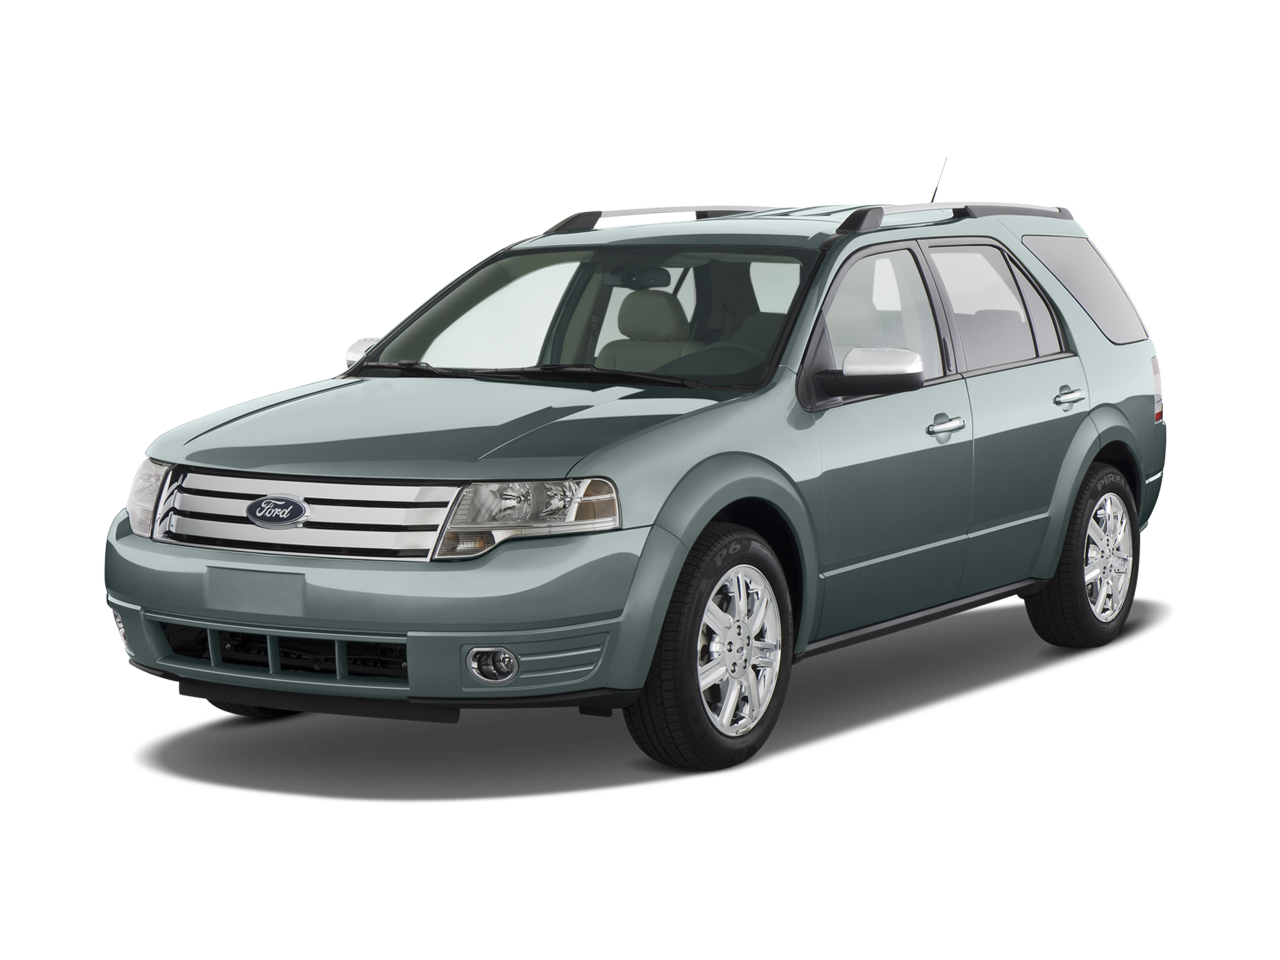 2008 Ford Taurus X AWD Limited - Ford Midsize Wagon Review ...